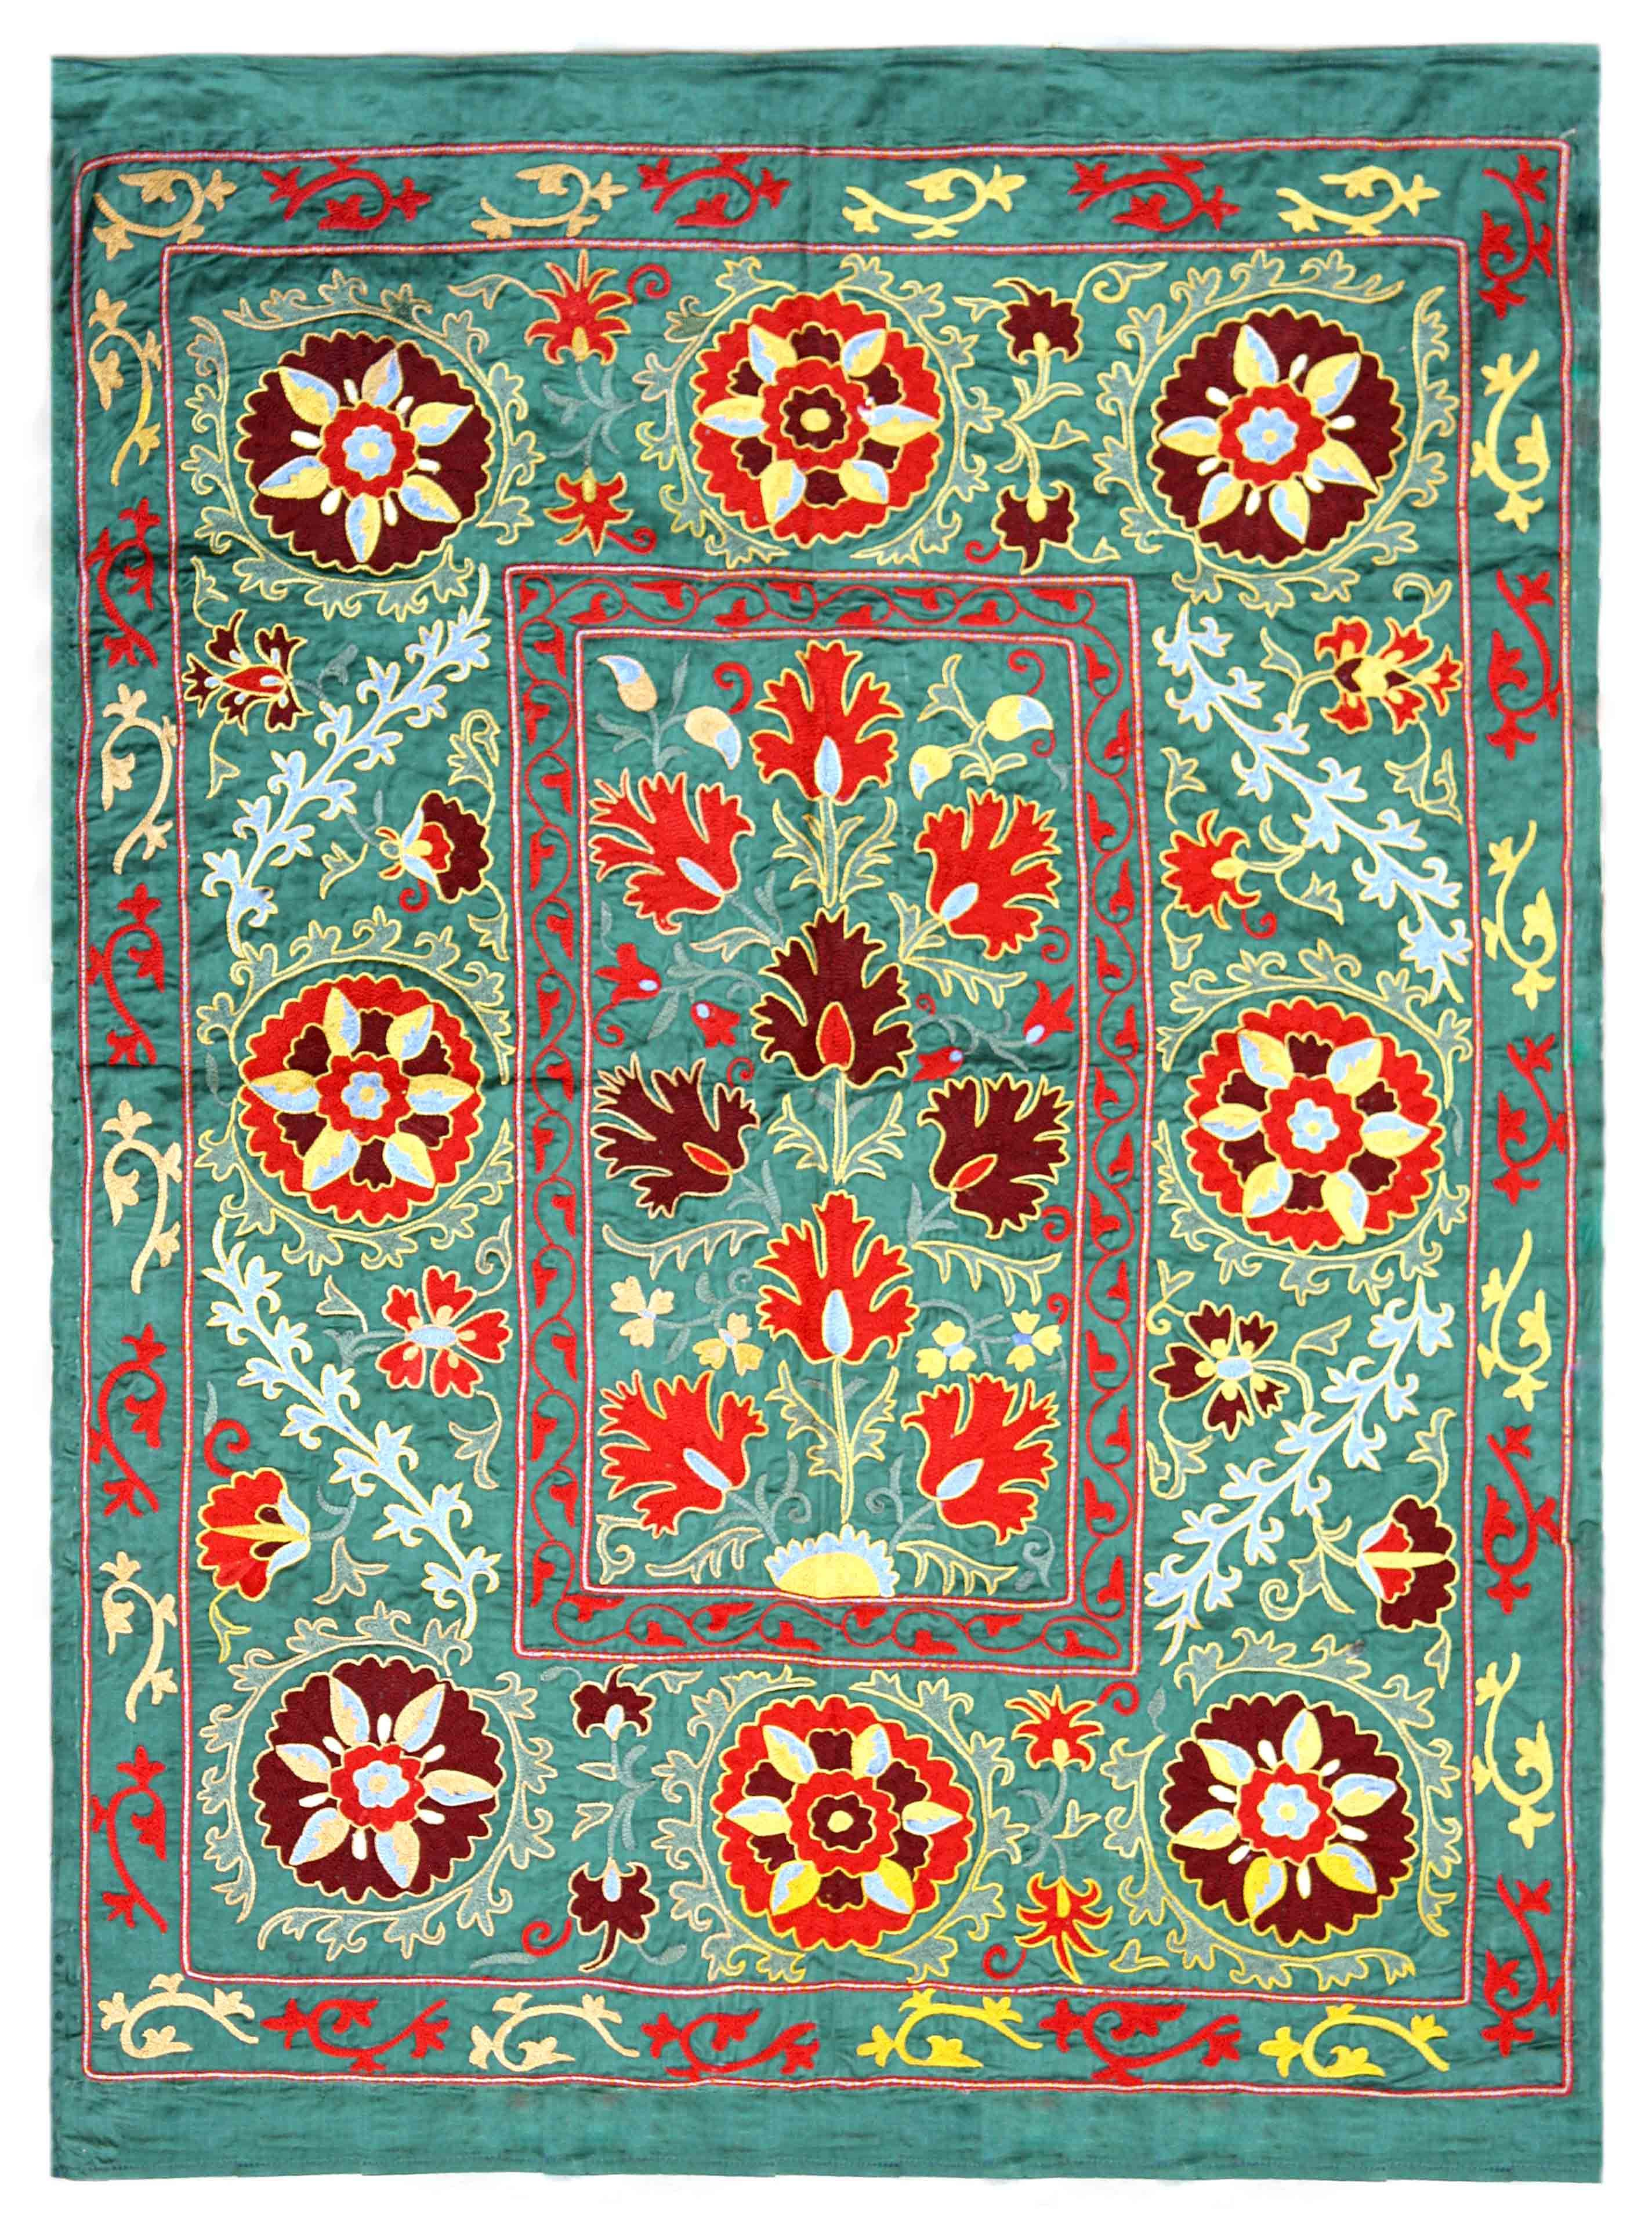 Antiques Antique Oriental Silk And Metallic Embroidery Suzani Embroidery